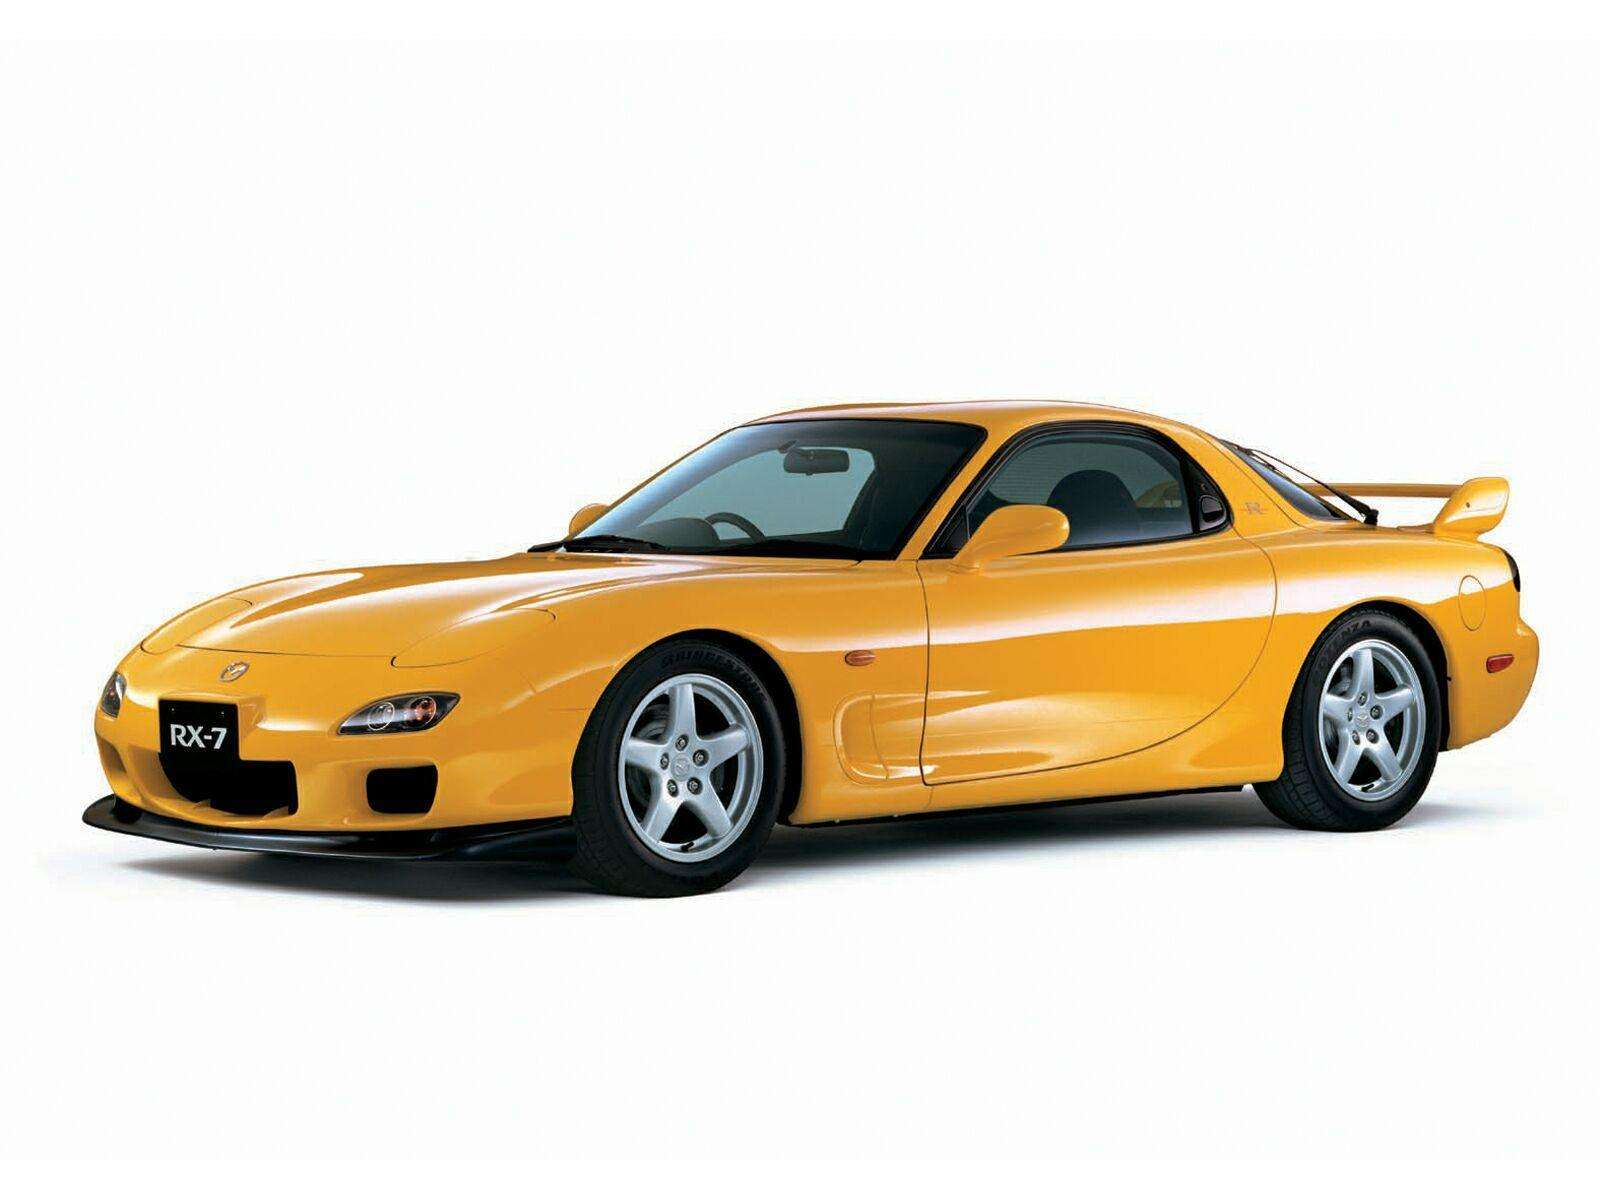 Picture of 2001 Mazda RX-7